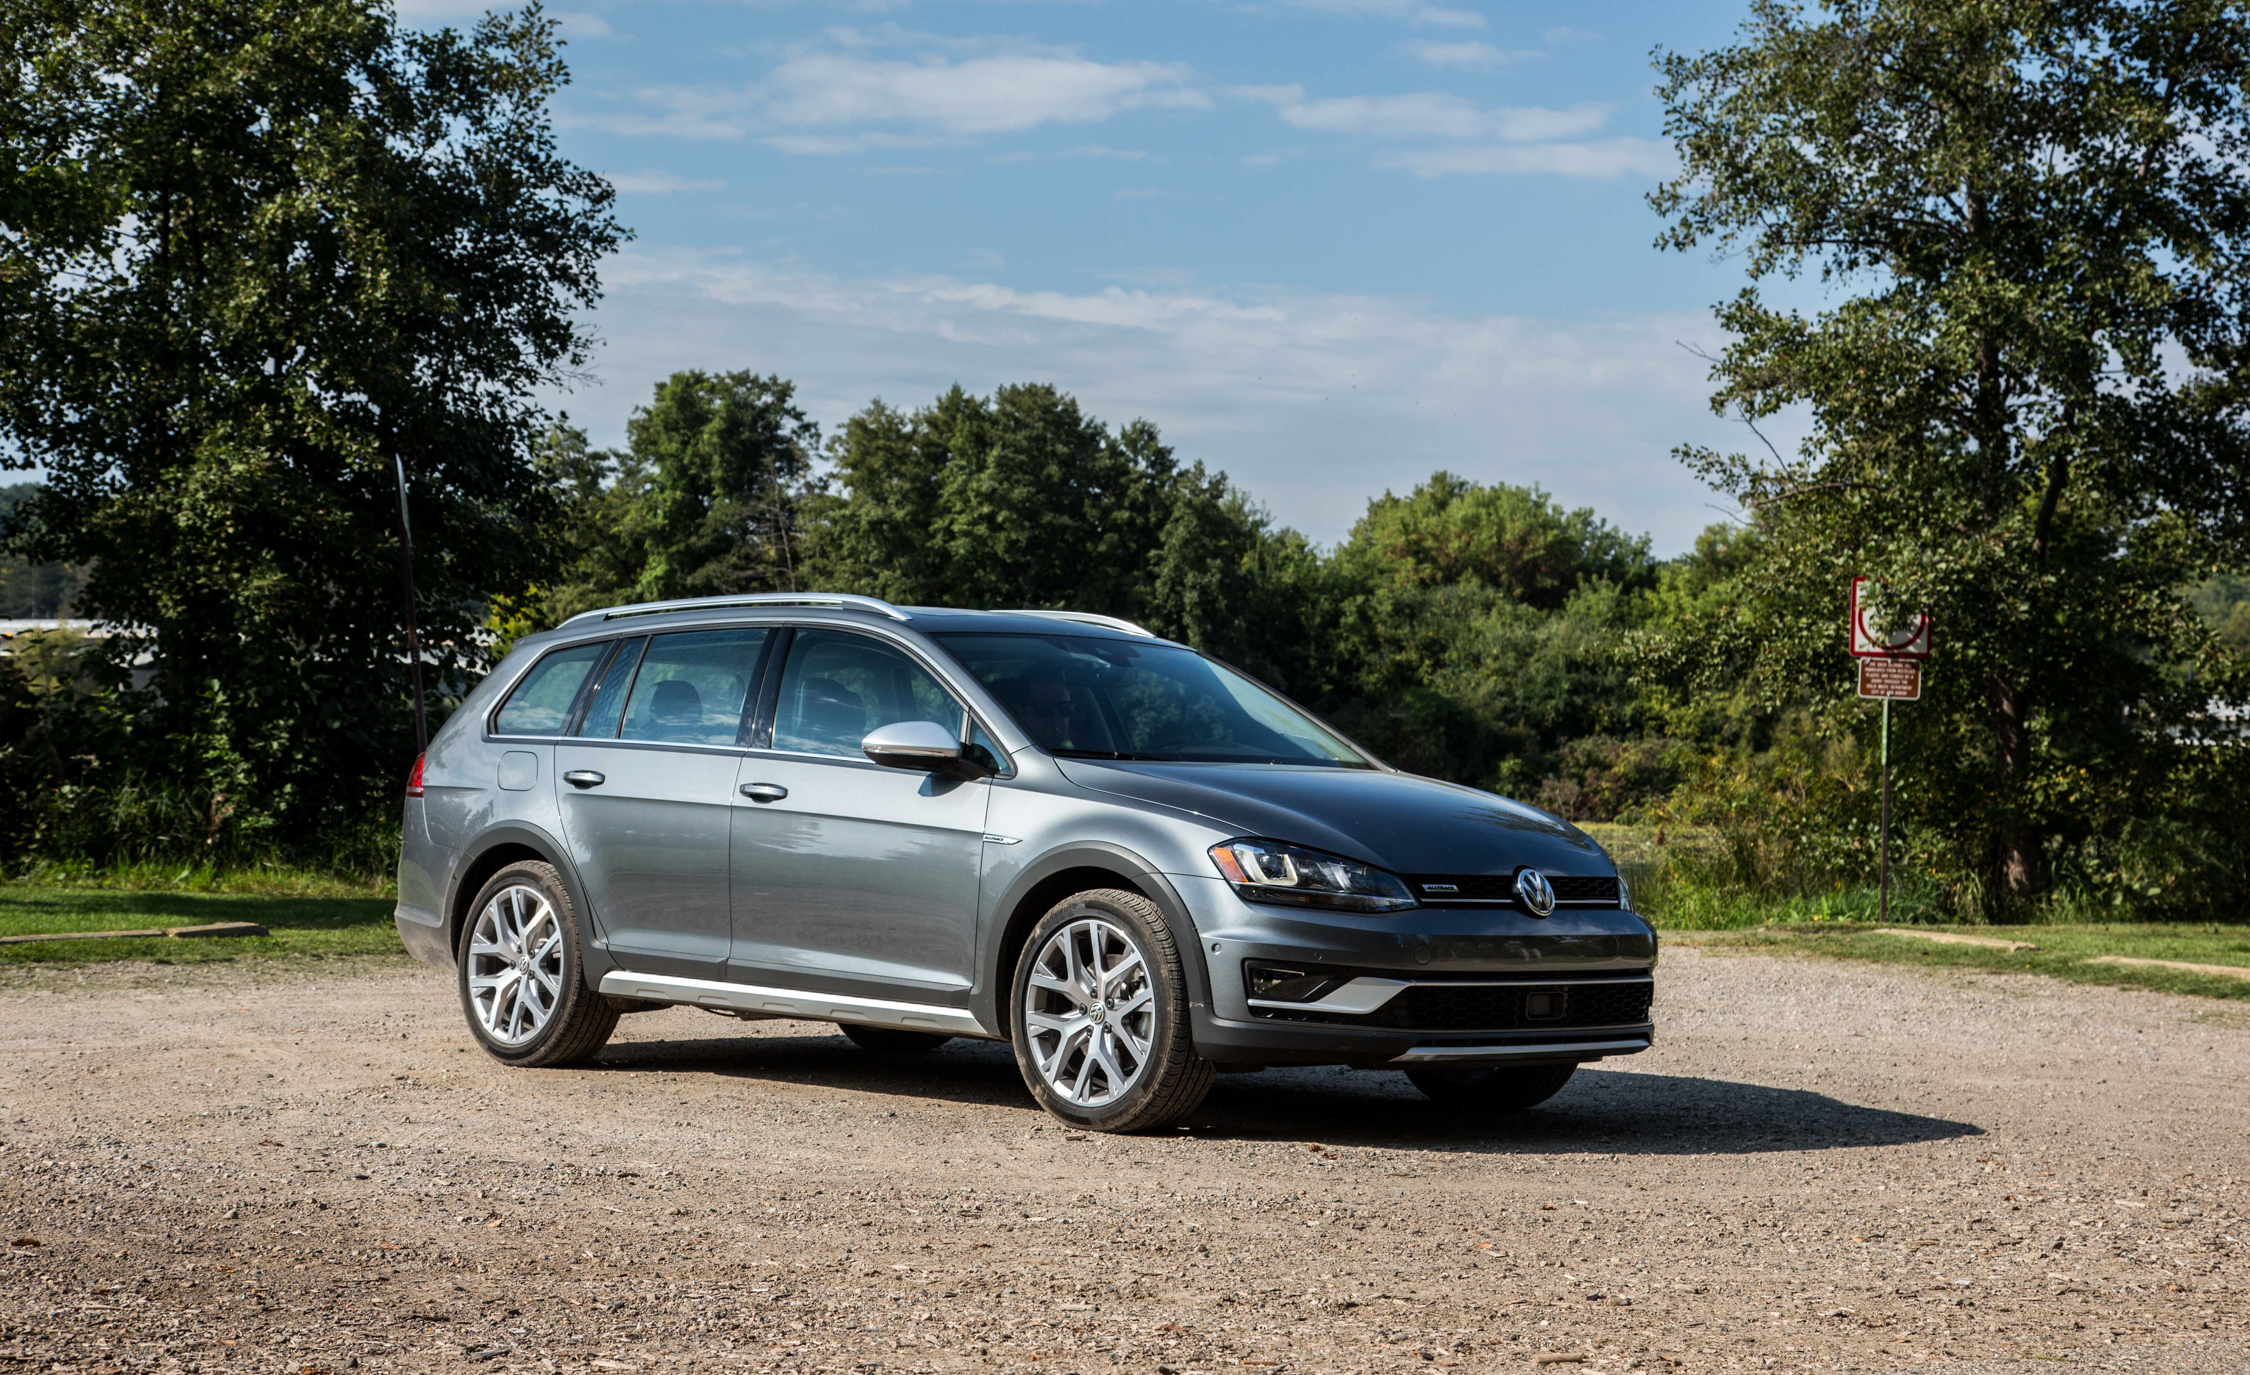 2017 Volkswagen Golf Alltrack (Photo 3 of 5)